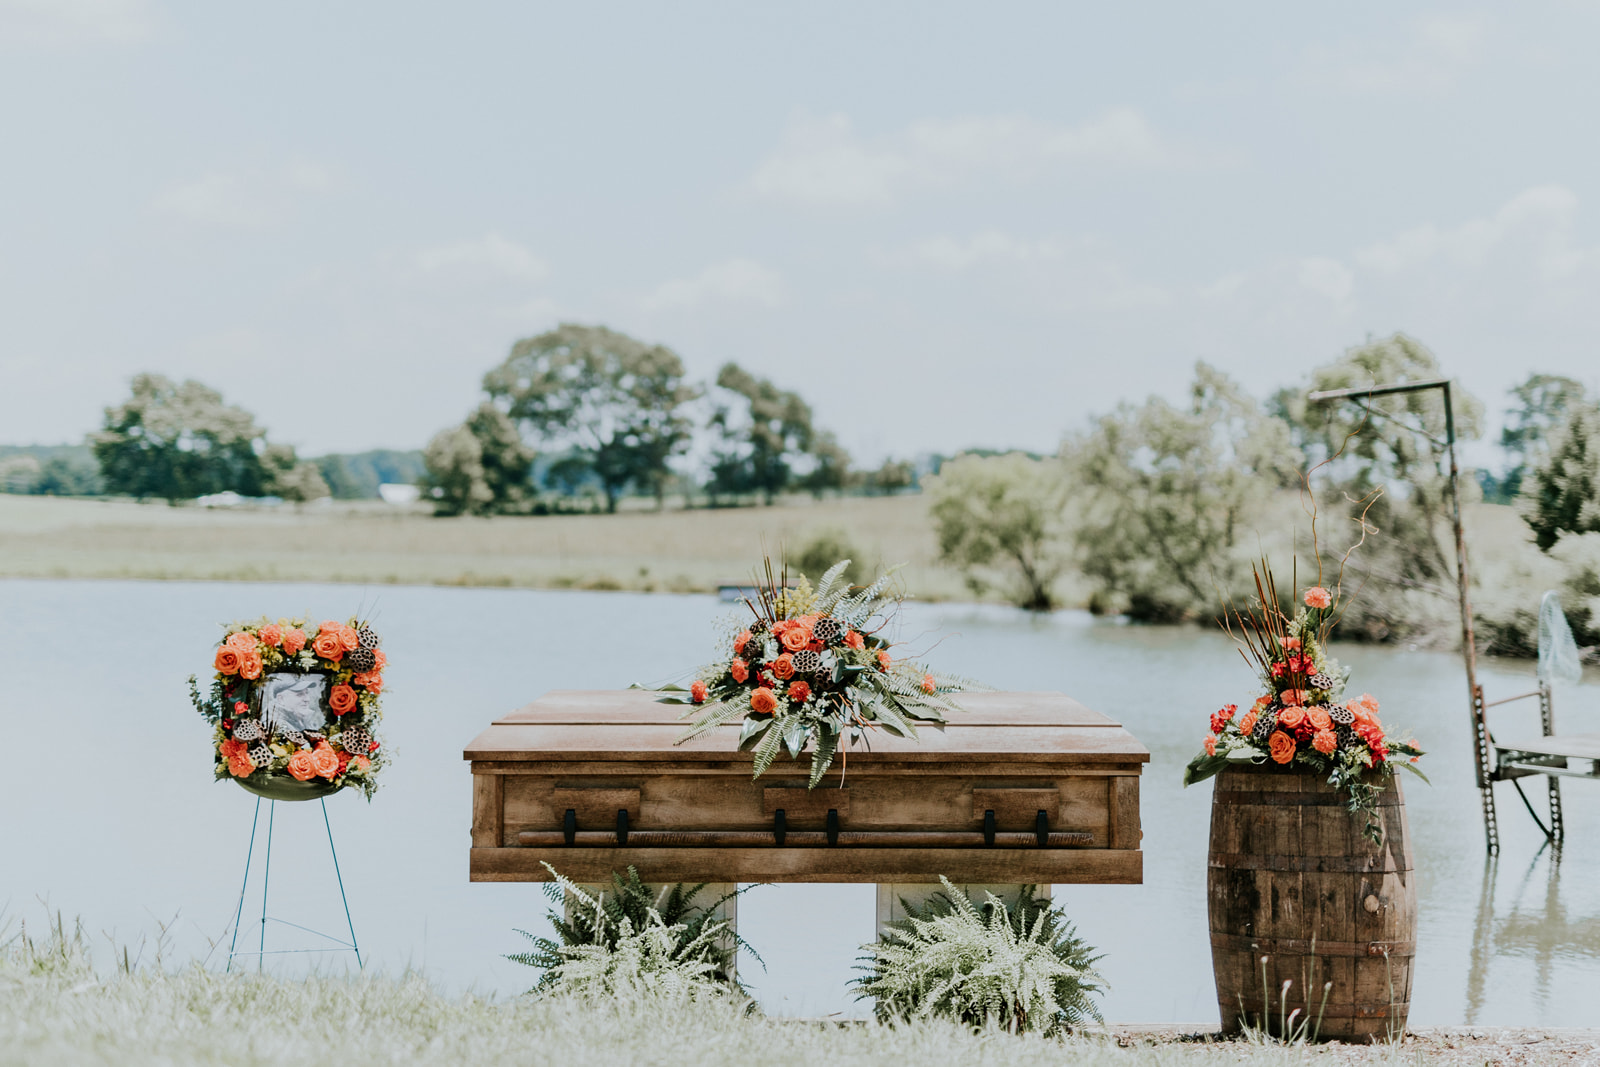 Inspired by the landscape of Moraine Park Farms in Zeeland, this collection captures the love for the outdoors with cattails, pods, grasses, ferns, and willow. The gold and orange tones complement the natural elements used throughout this collection. It's designed using orange roses, red alstroemeria, solidago, carnations, ferns, pods, cattails, and fresh-cut greenery.